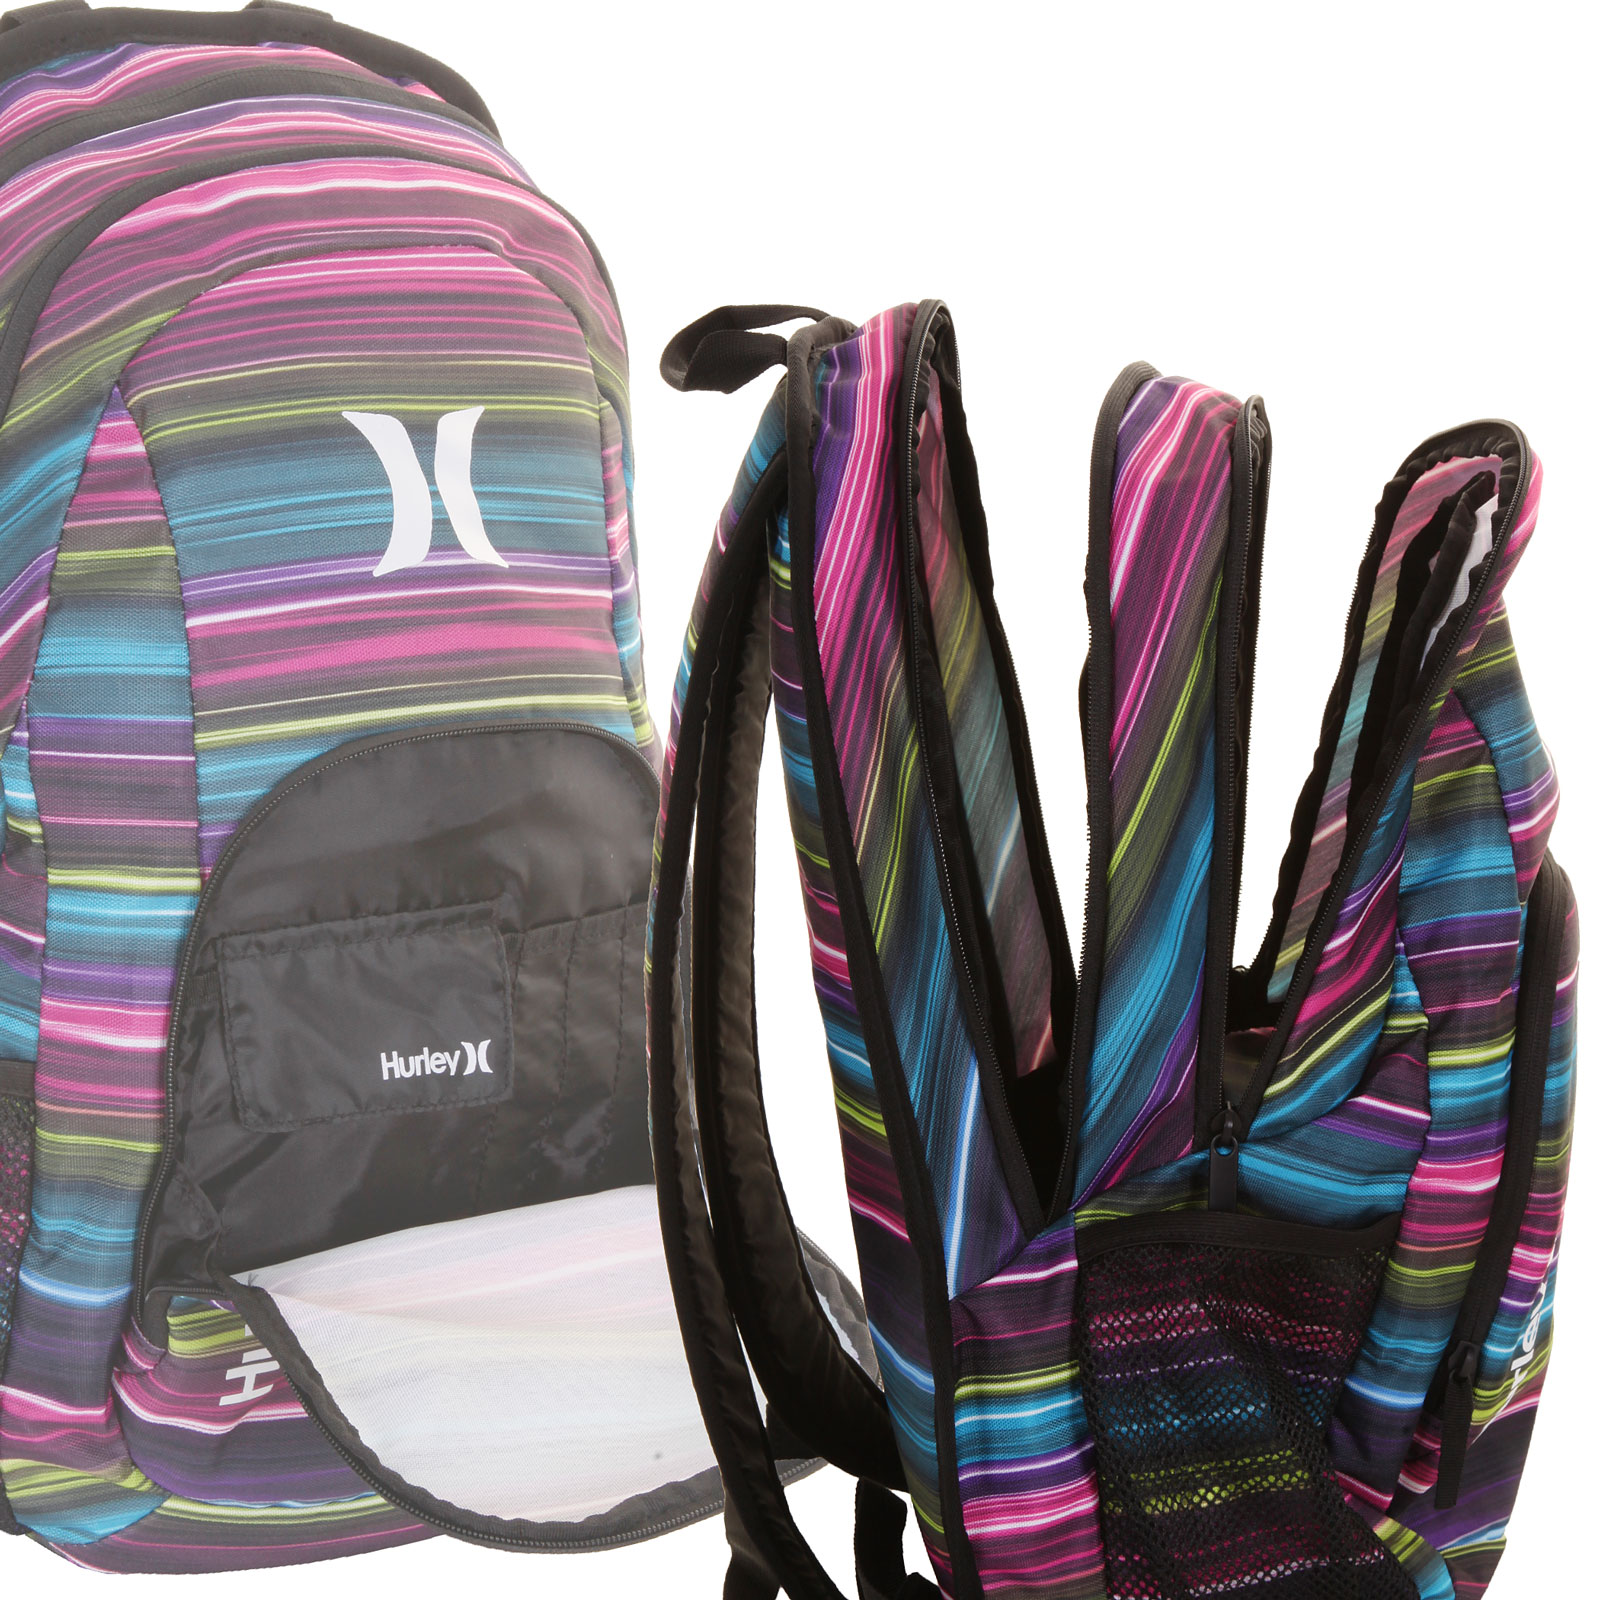 b18bf7a52 Home Page Accessories Backpacks Hurley Mission Backpack women (shutter .